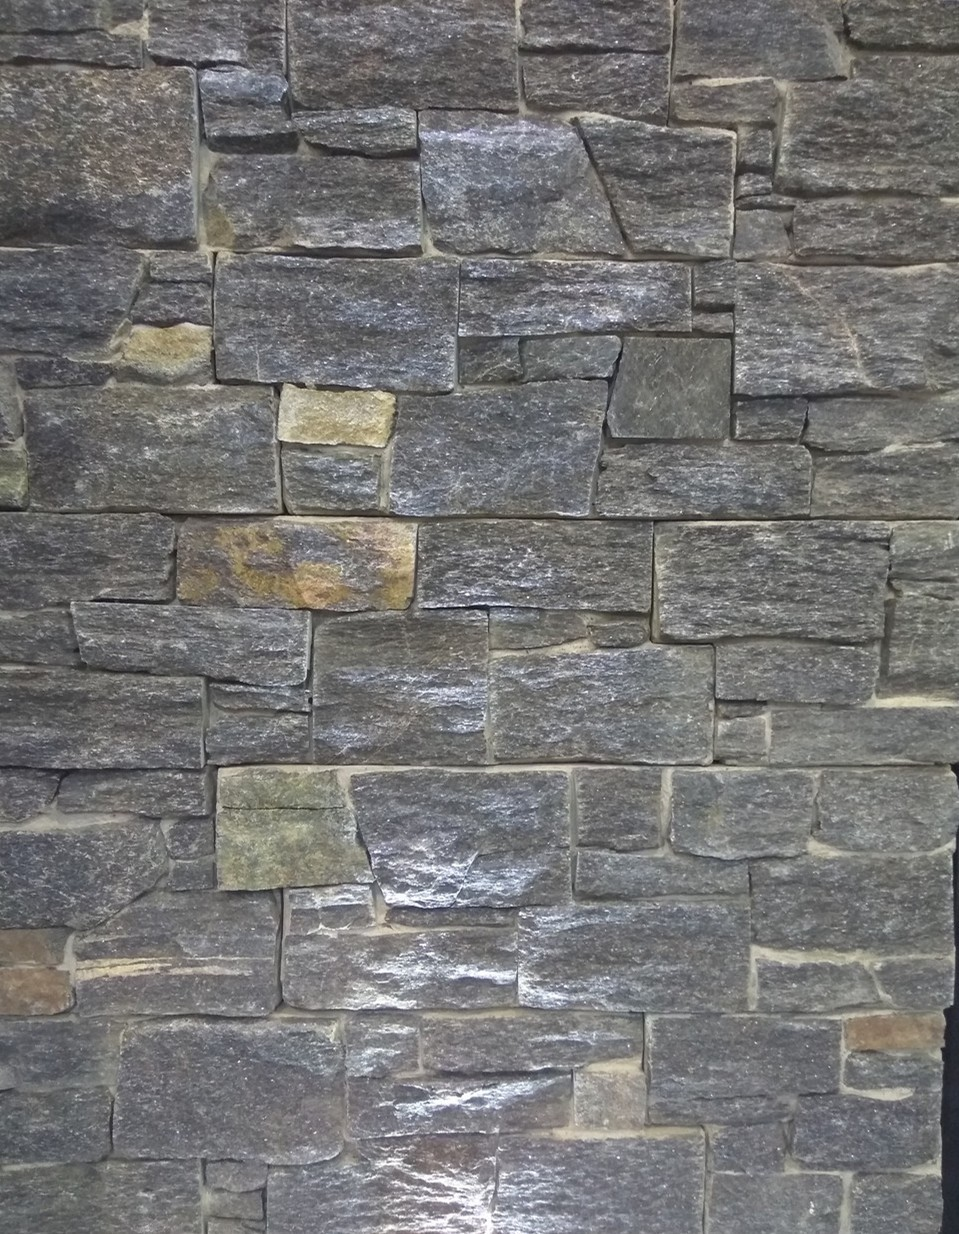 Natural Black Granite Stone Cultured Stone For Fireplace With Cement Back Or Net Back Buy Fireplace Stone Stone With Net Back Cultured Stone Product On Alibaba Com